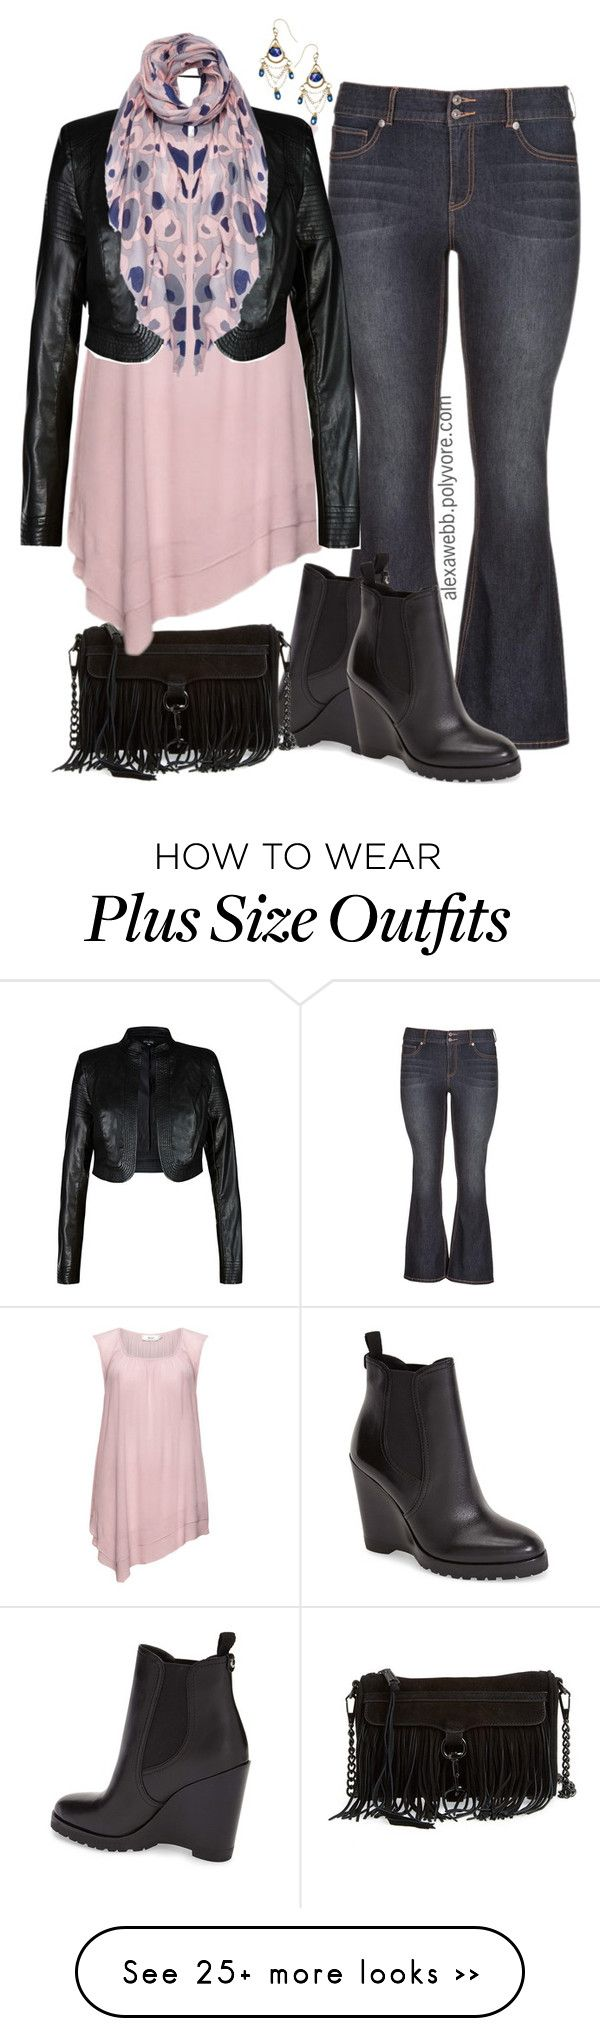 """Plus Size Flares"" by alexawebb on Polyvore featuring maurices, MICHAEL Michael Kors, Rebecca Minkoff, Zizzi, City Chic, Lipsy and Urban Posh"